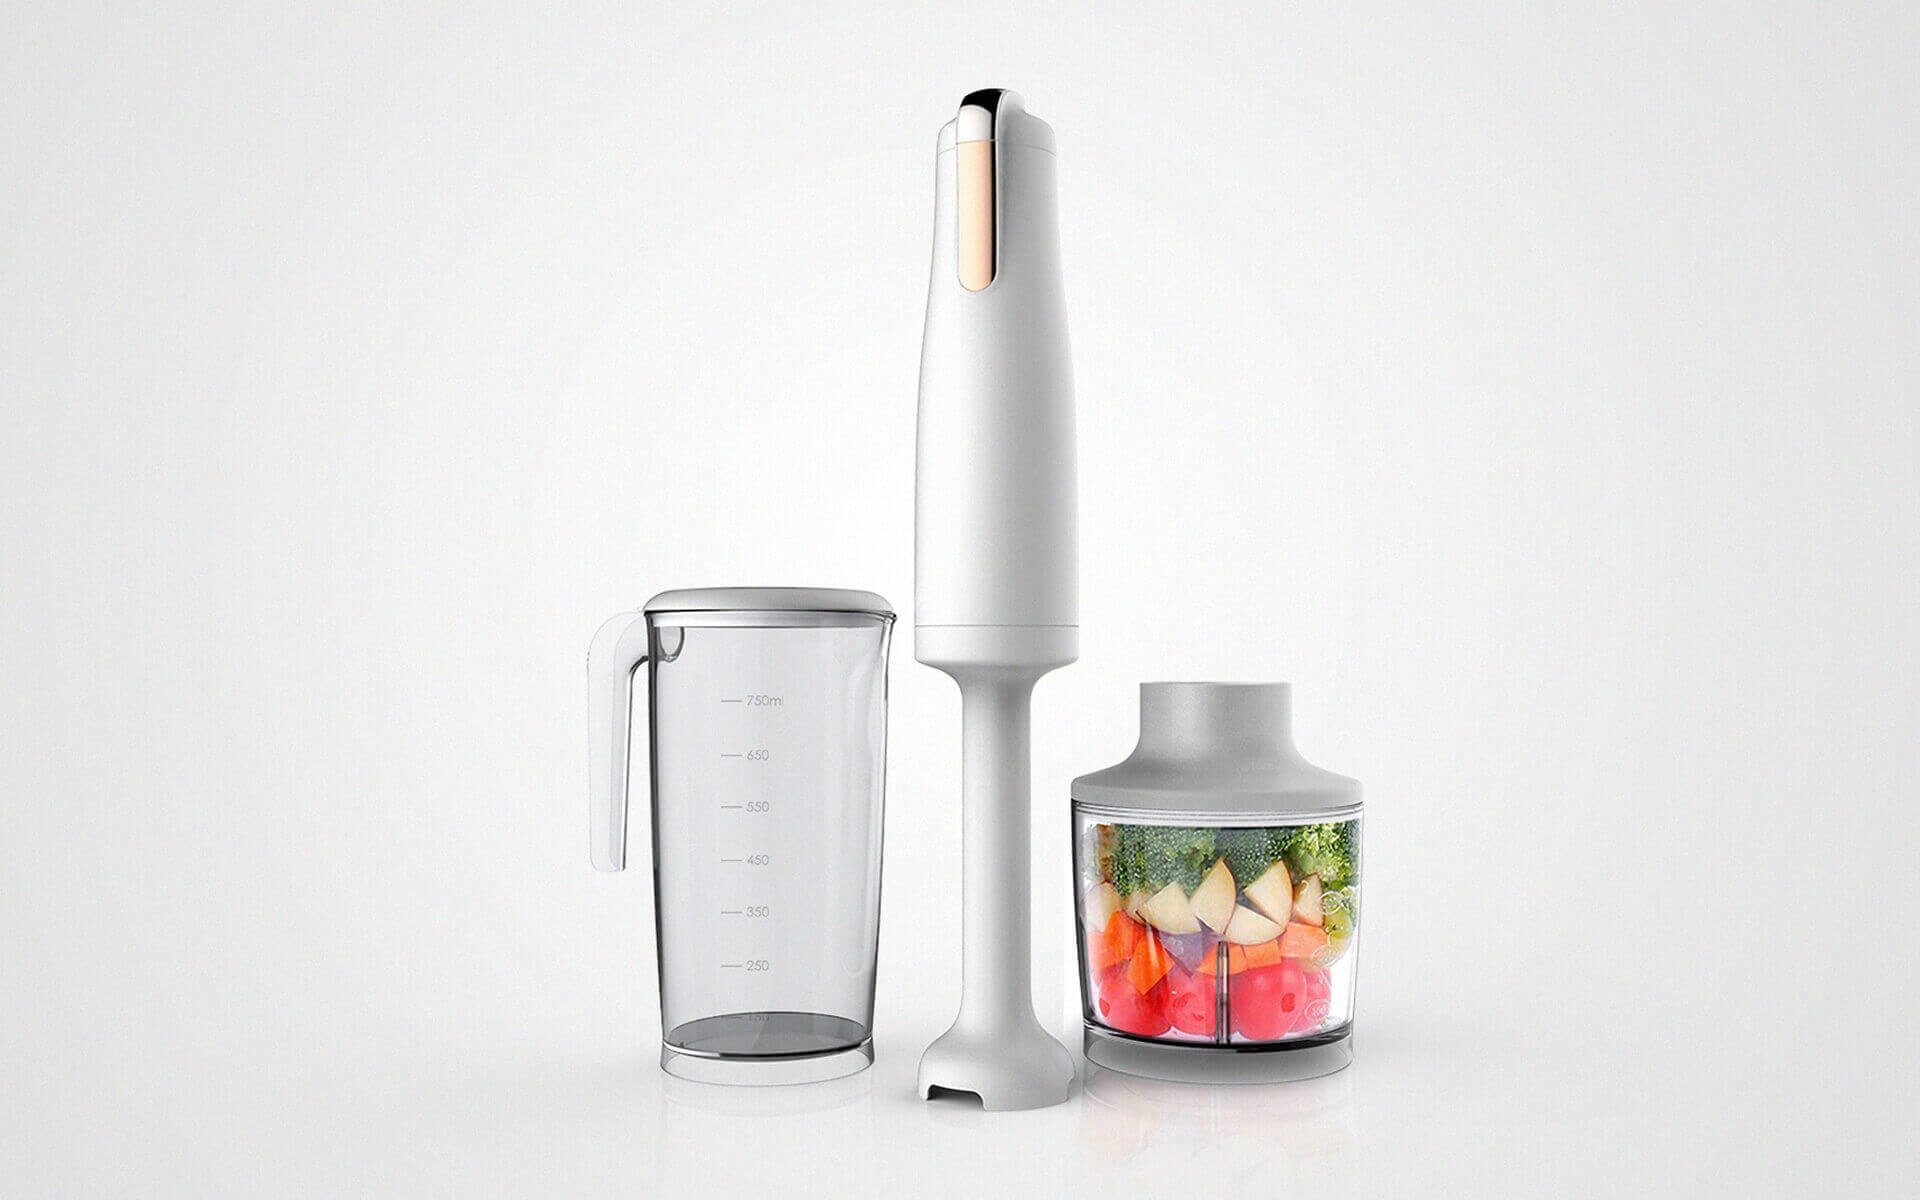 Hand Blender-A blender is a kitchen and laboratory appliance used to mix, purée, or emulsify food and other substances